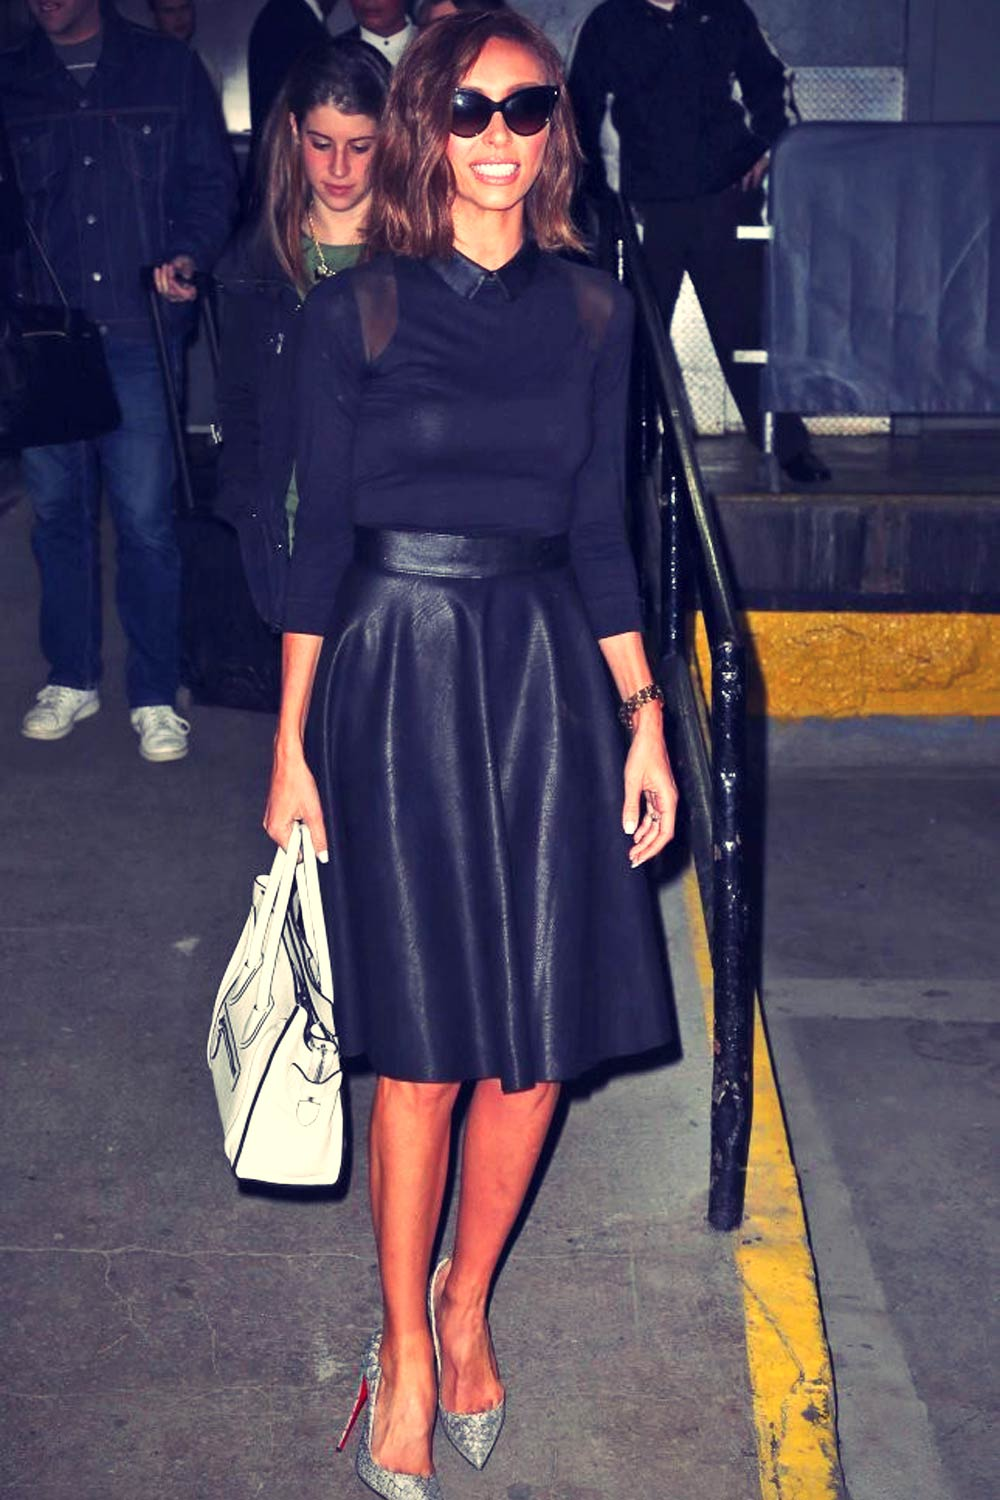 Giuliana Rancic is seen leaving an office building in New York City